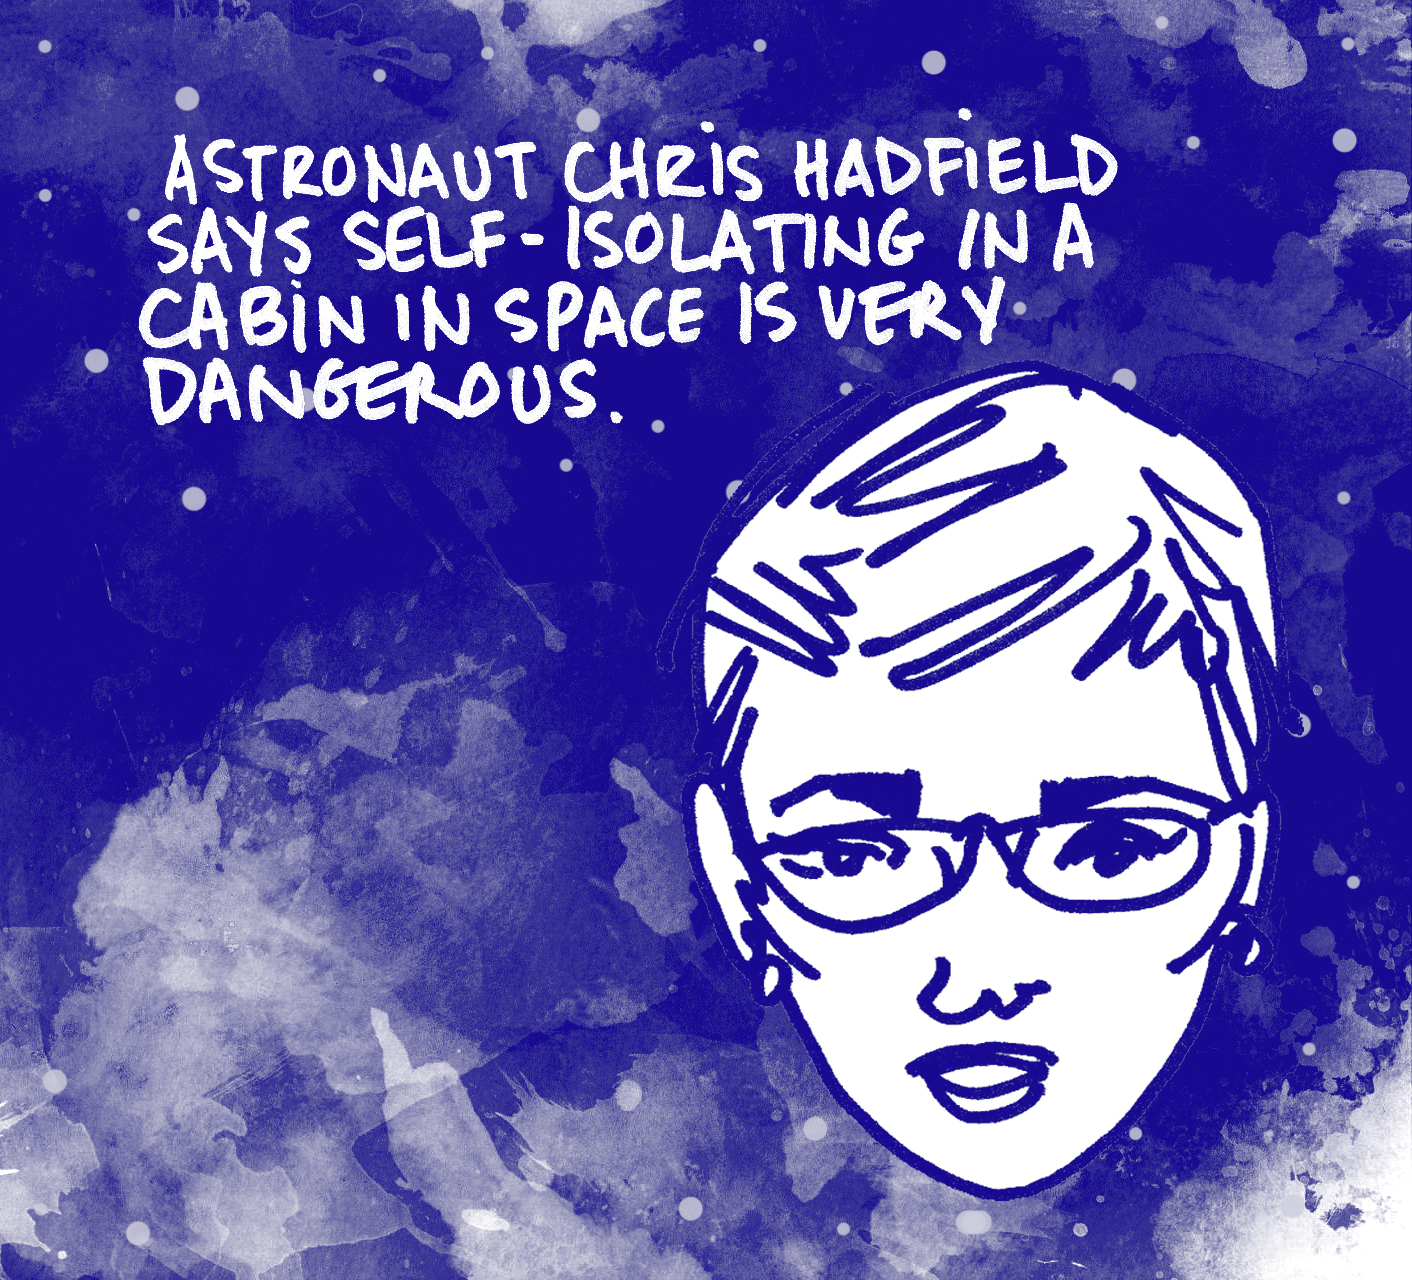 Comic by Alison Garwood-Jones inspired by Chris Hadfield